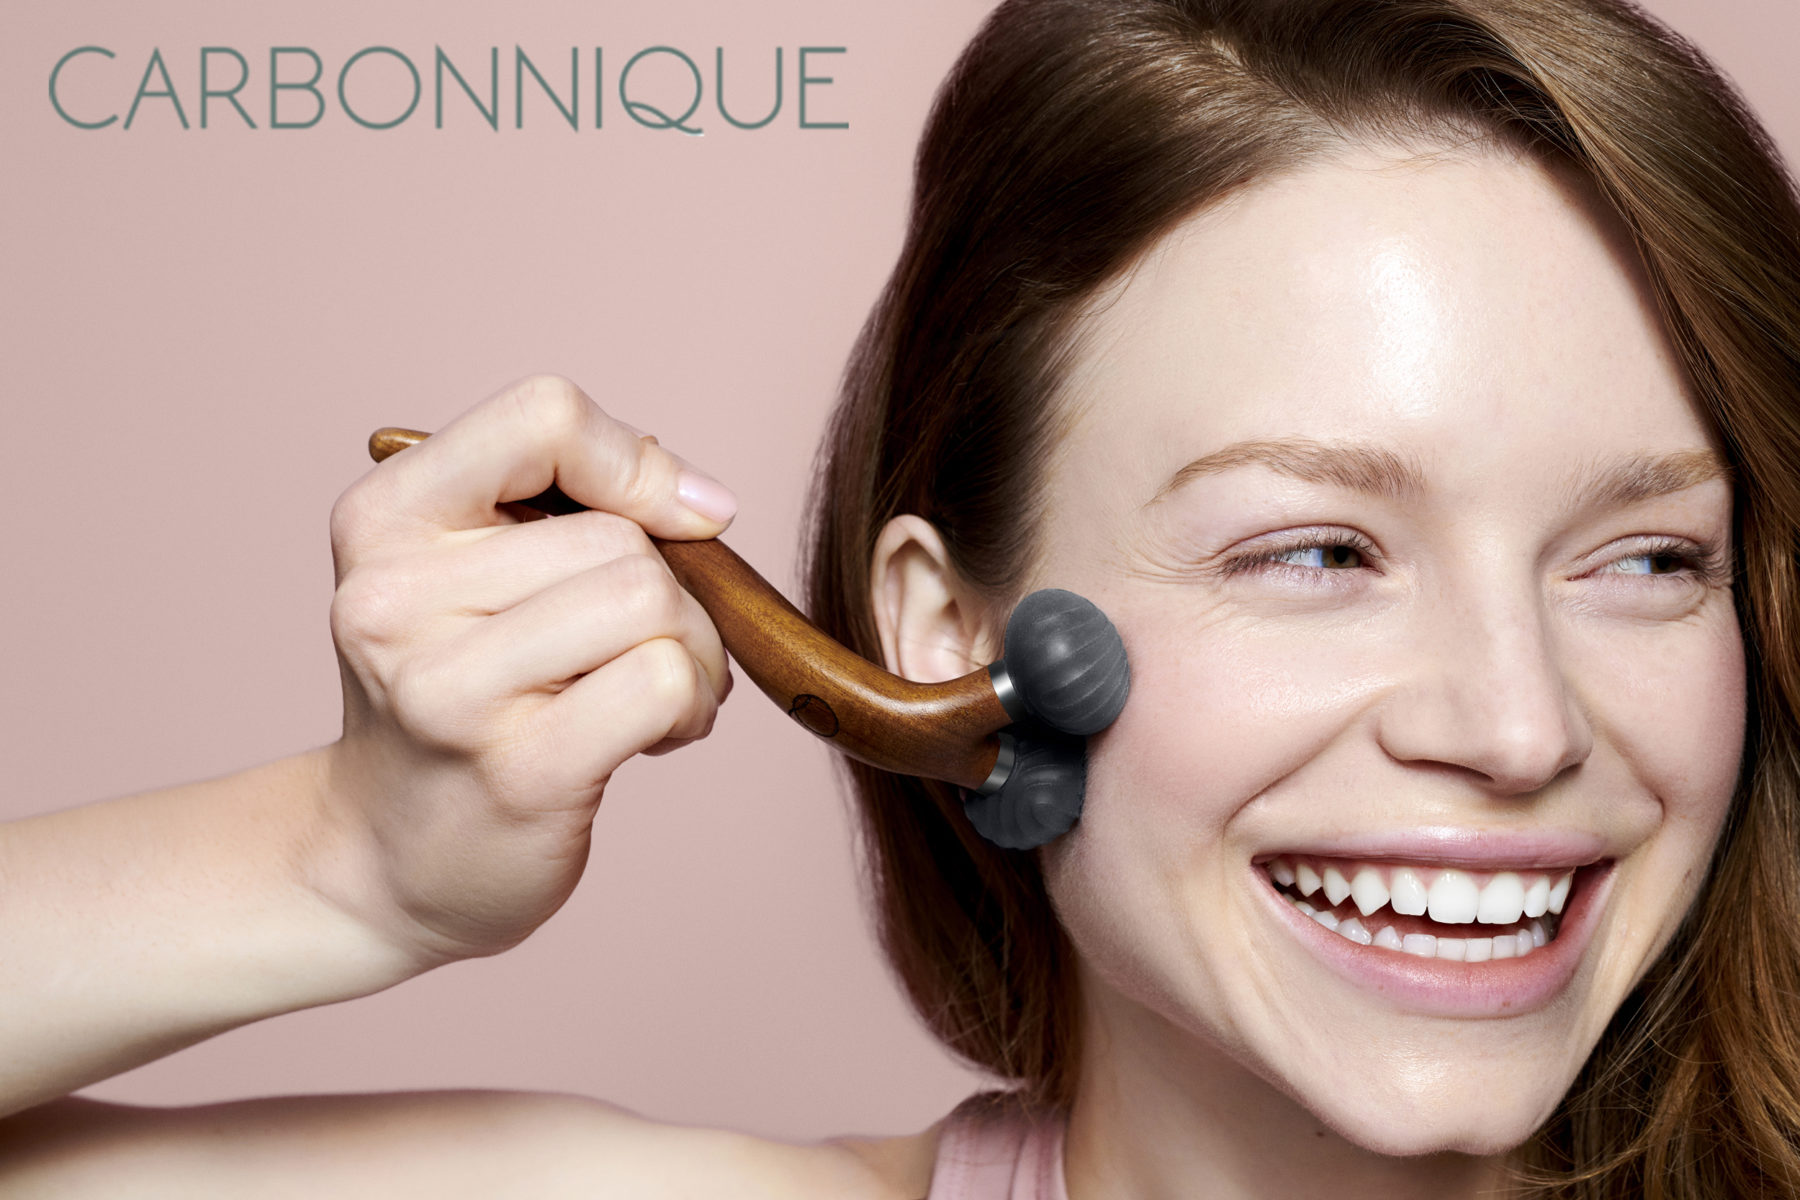 Beauty commercial for Carbonnique photographed by Ala Wesolowska